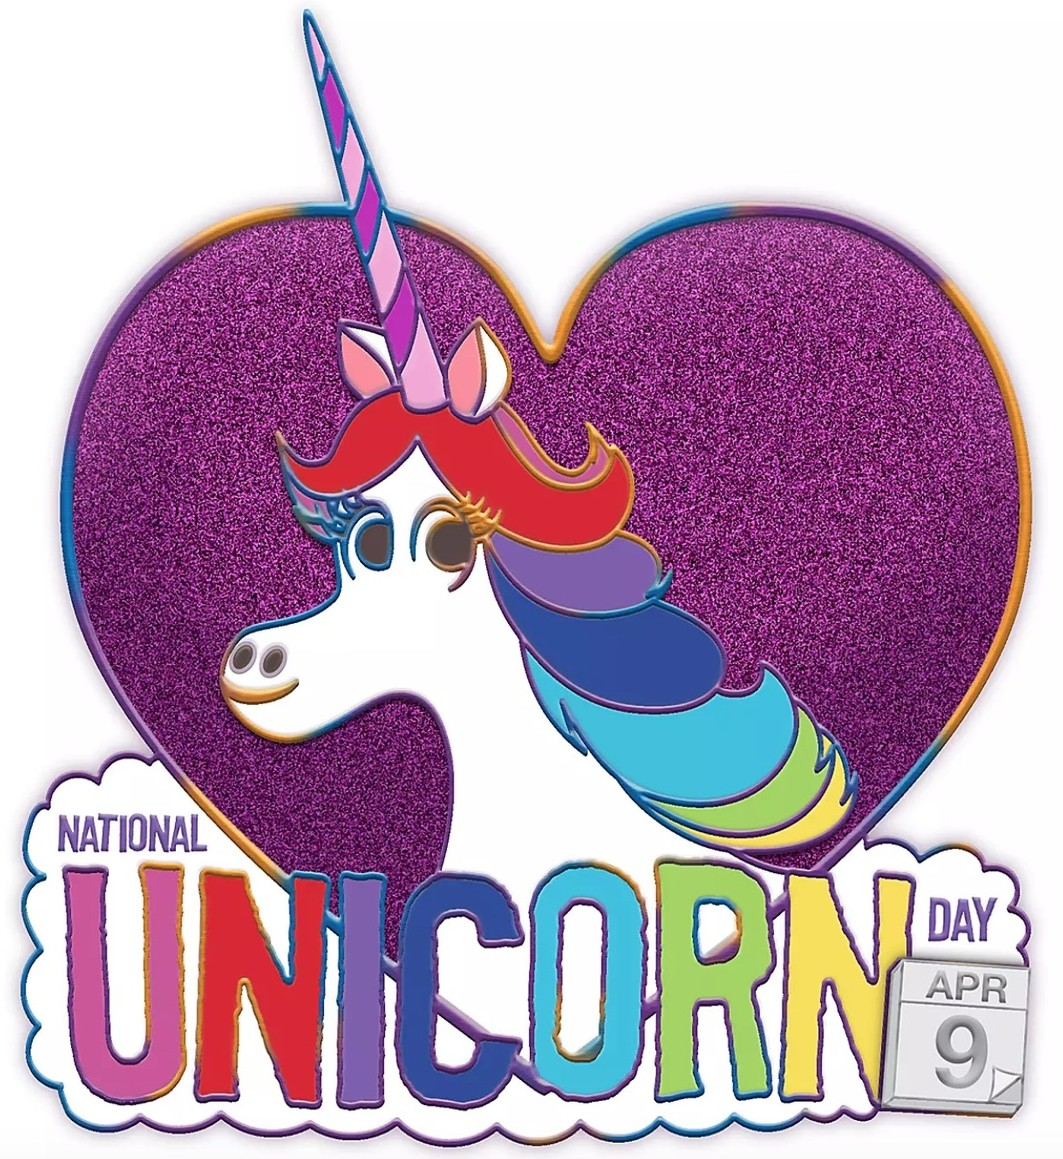 National Unicorn Day